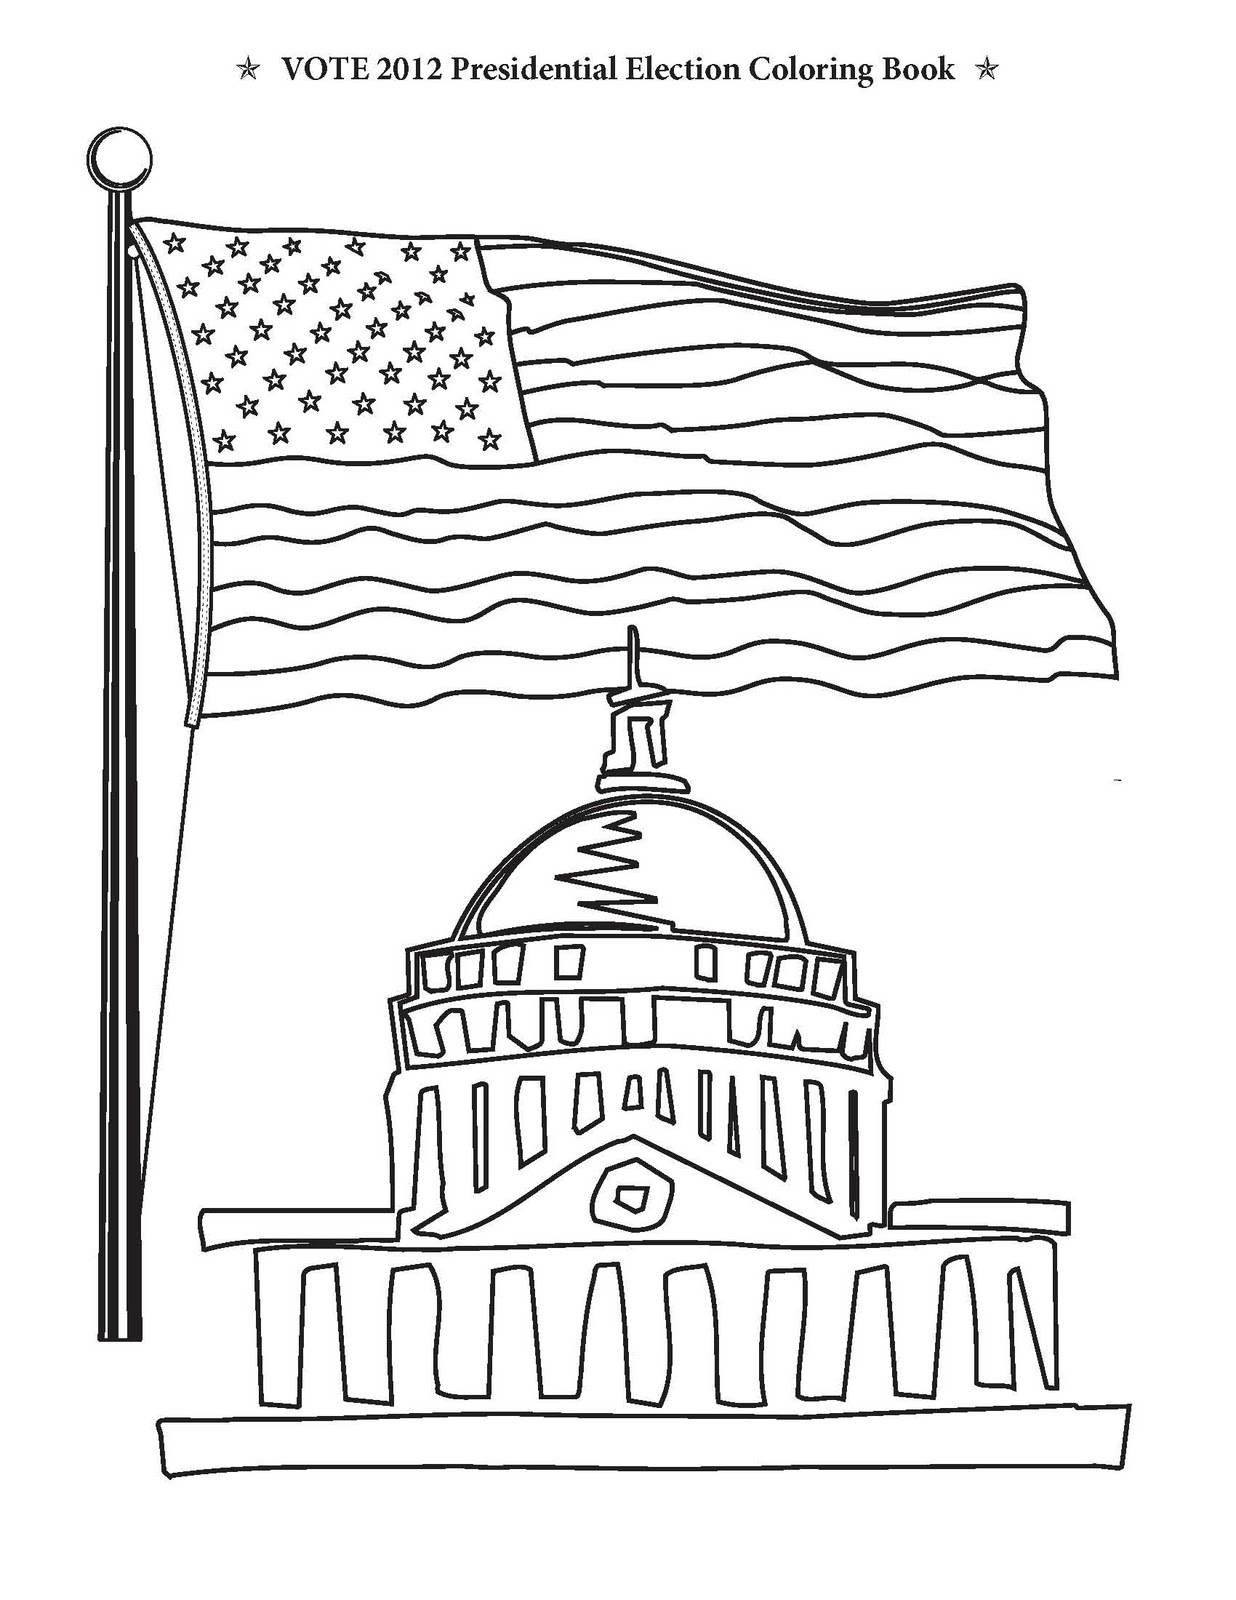 vote 2012 presidential election coloring book november 2011